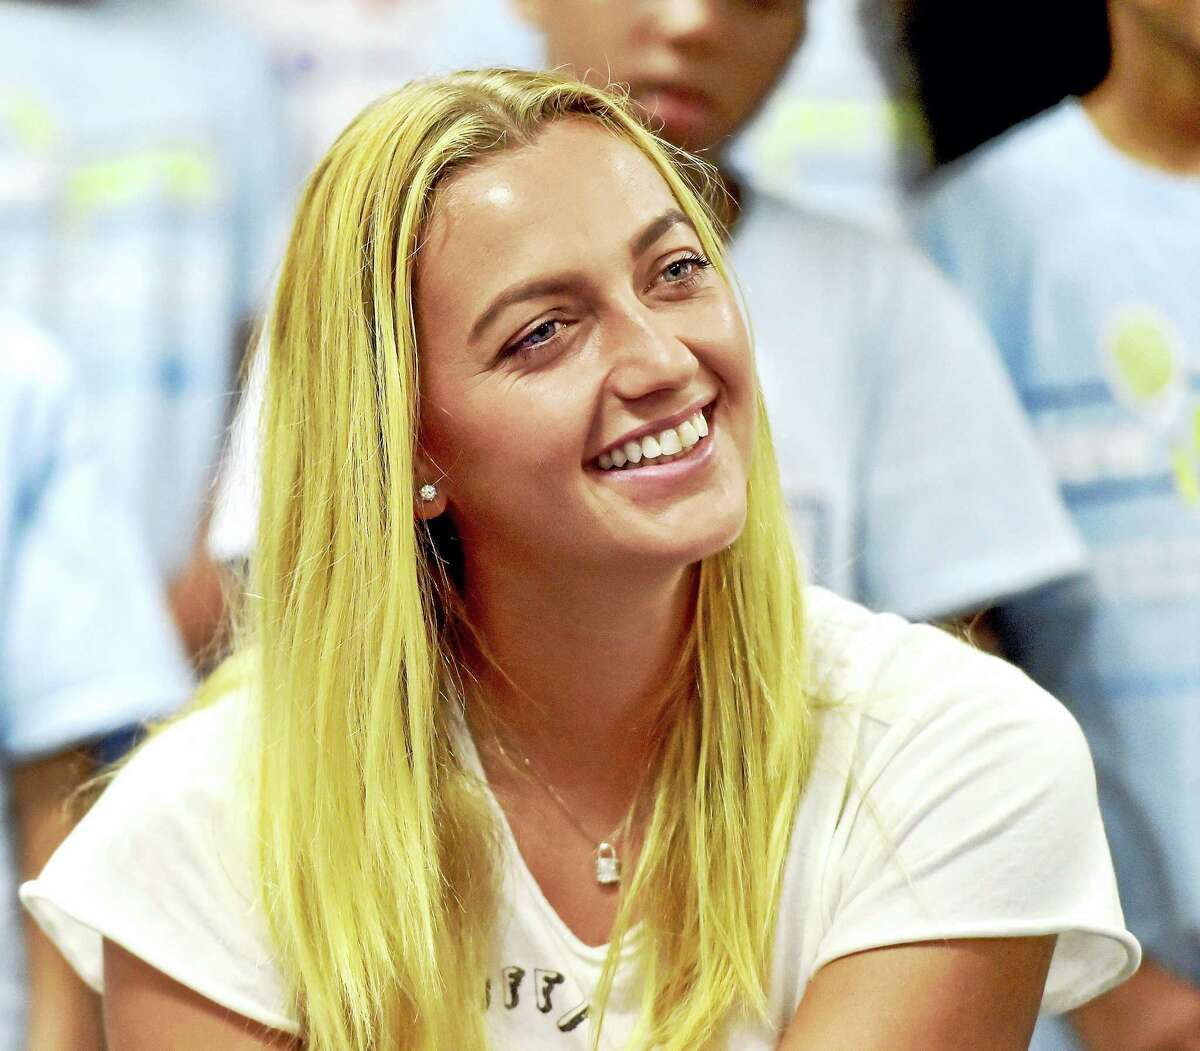 Petra Kvitova will be the No. 3 seed in the main draw of the Connecticut Open.